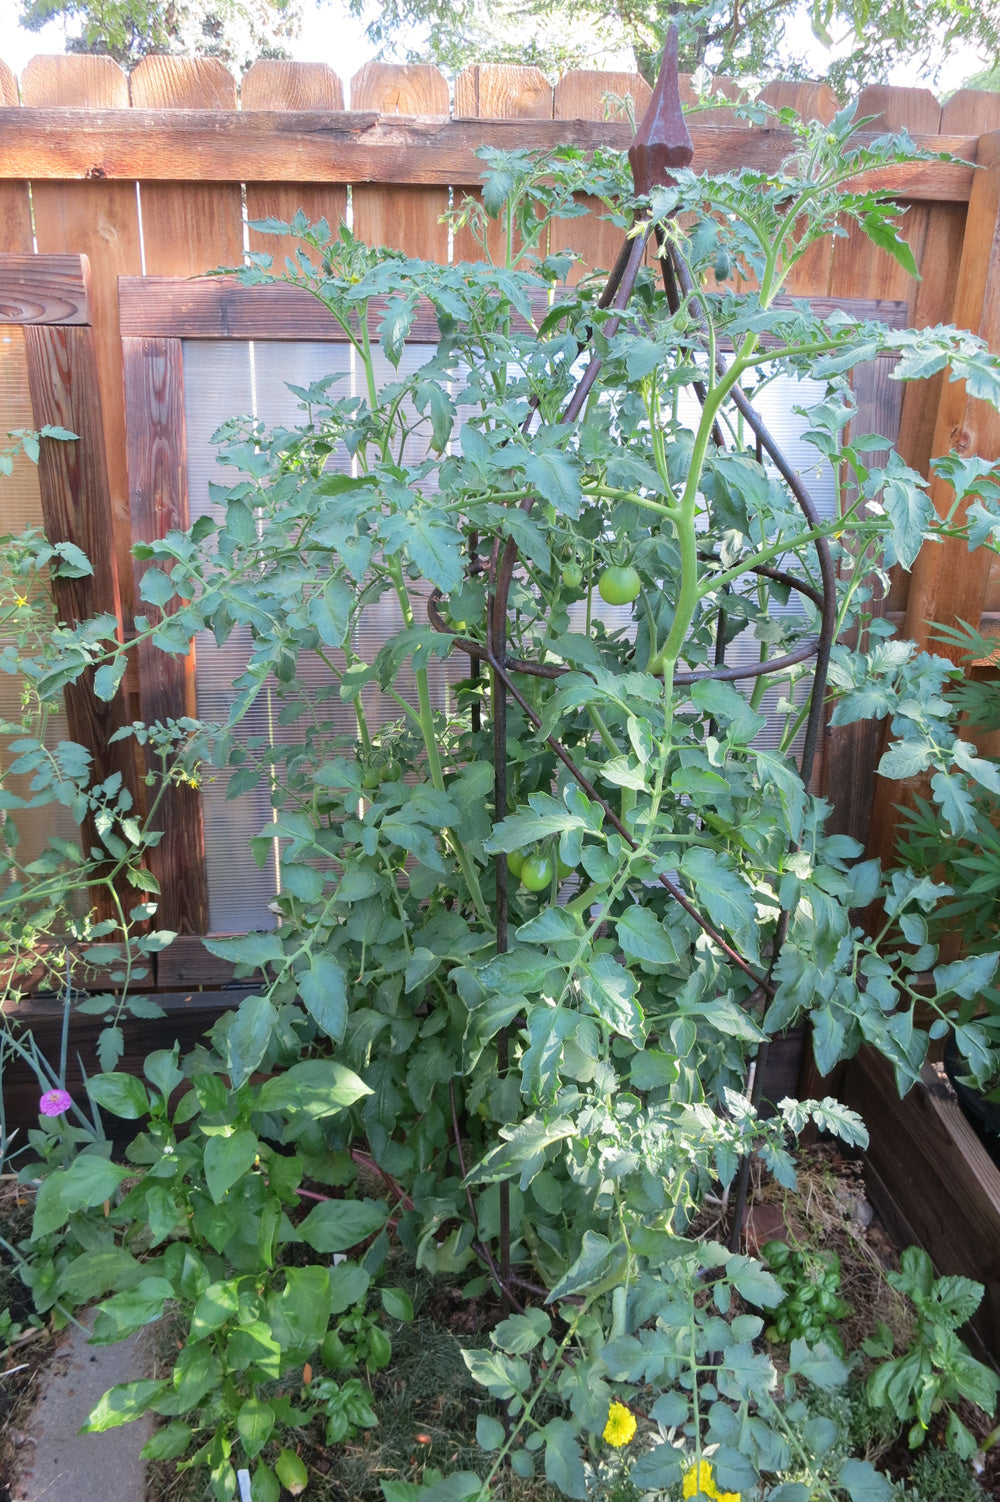 Is it too late to start tomatoes? Here's a healthy tomato plant.